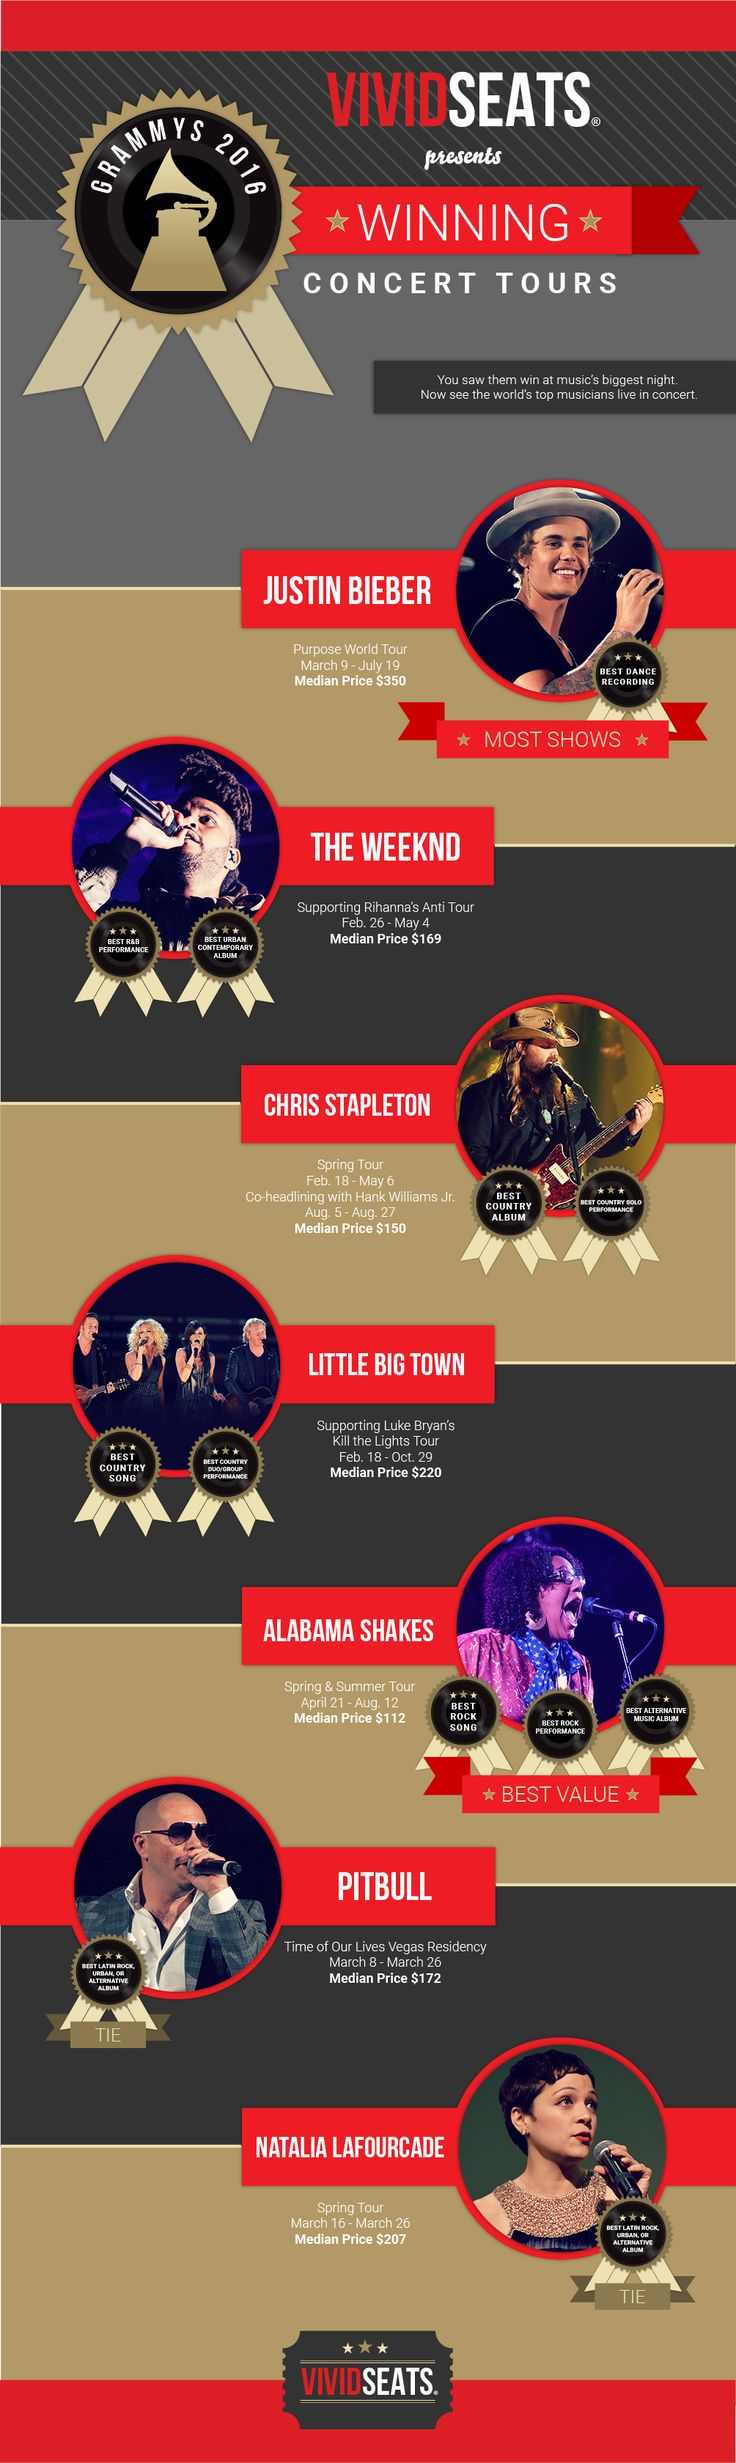 GRAMMYS 2016The 2016 GRAMMYs ceremony was filled with surprises last night, but as usual there was nothing more entertaining than the live performances from the year's top artists. From Adele to Kendrick Lamar, the 2016 performers brought their A-game and wowed audiences around the world.